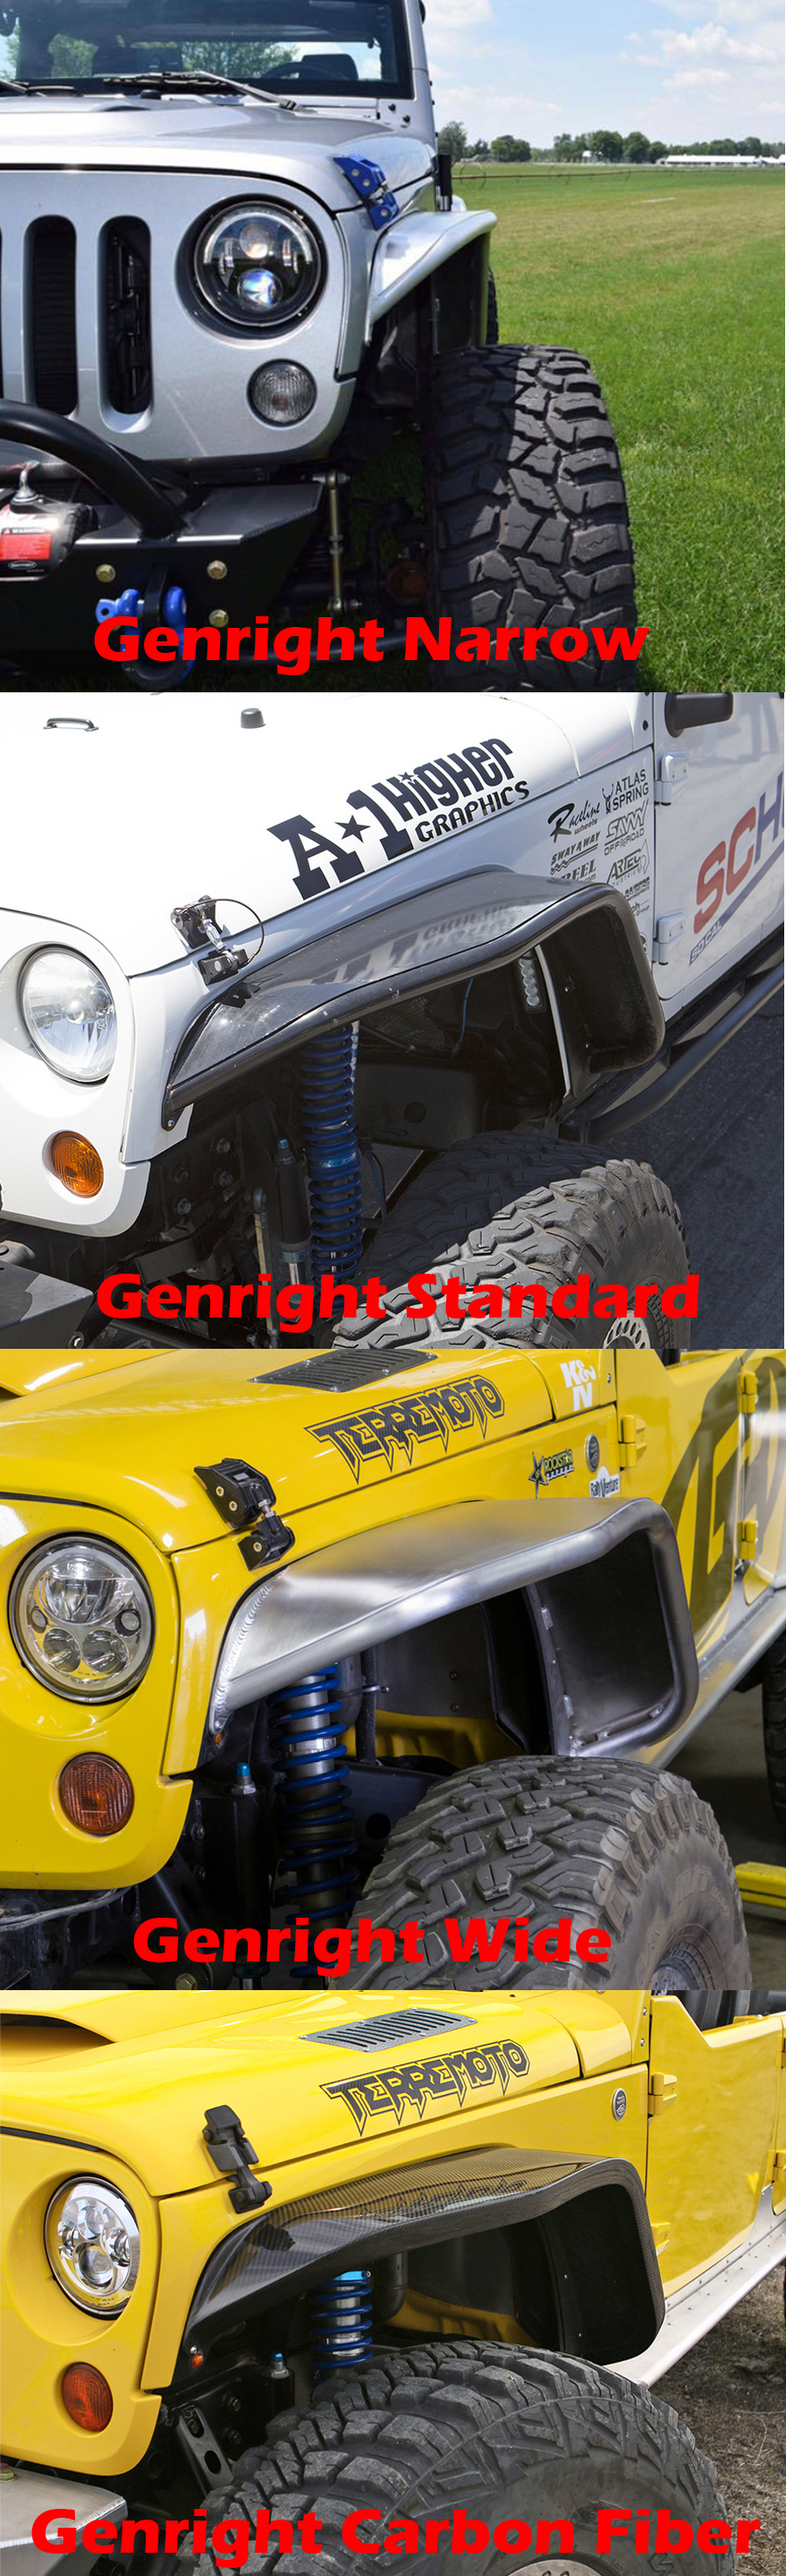 genright jeep jk tube fenders